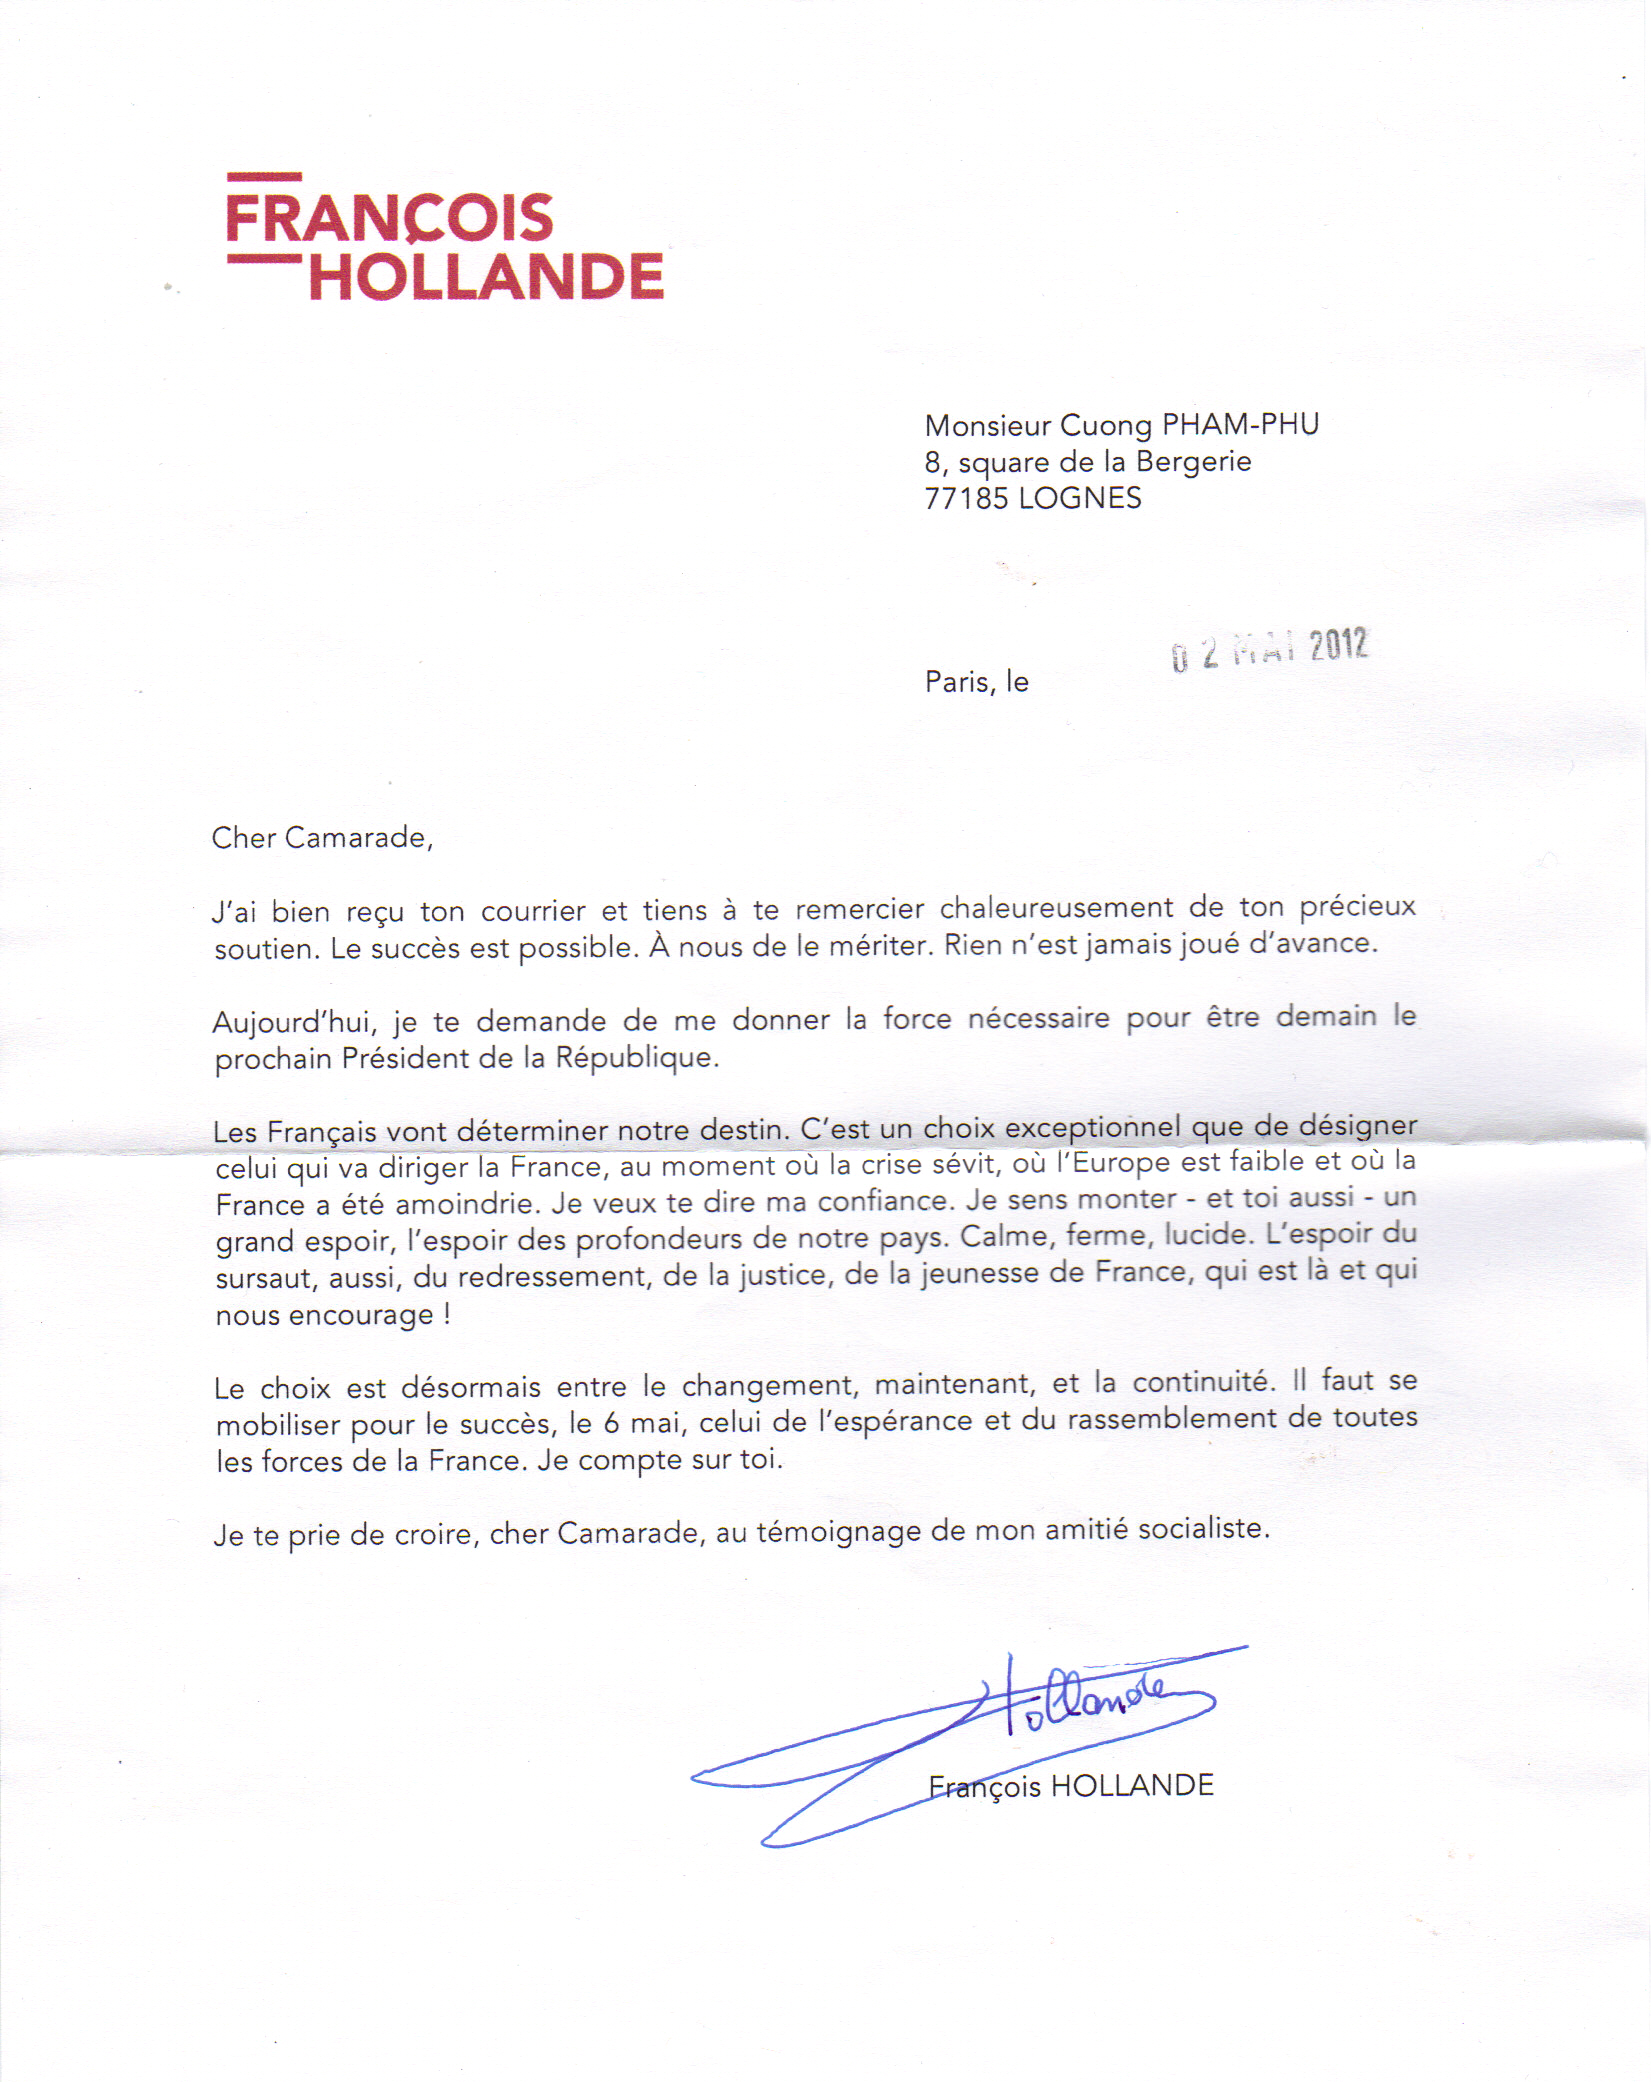 lettre-de-fhollande.JPG